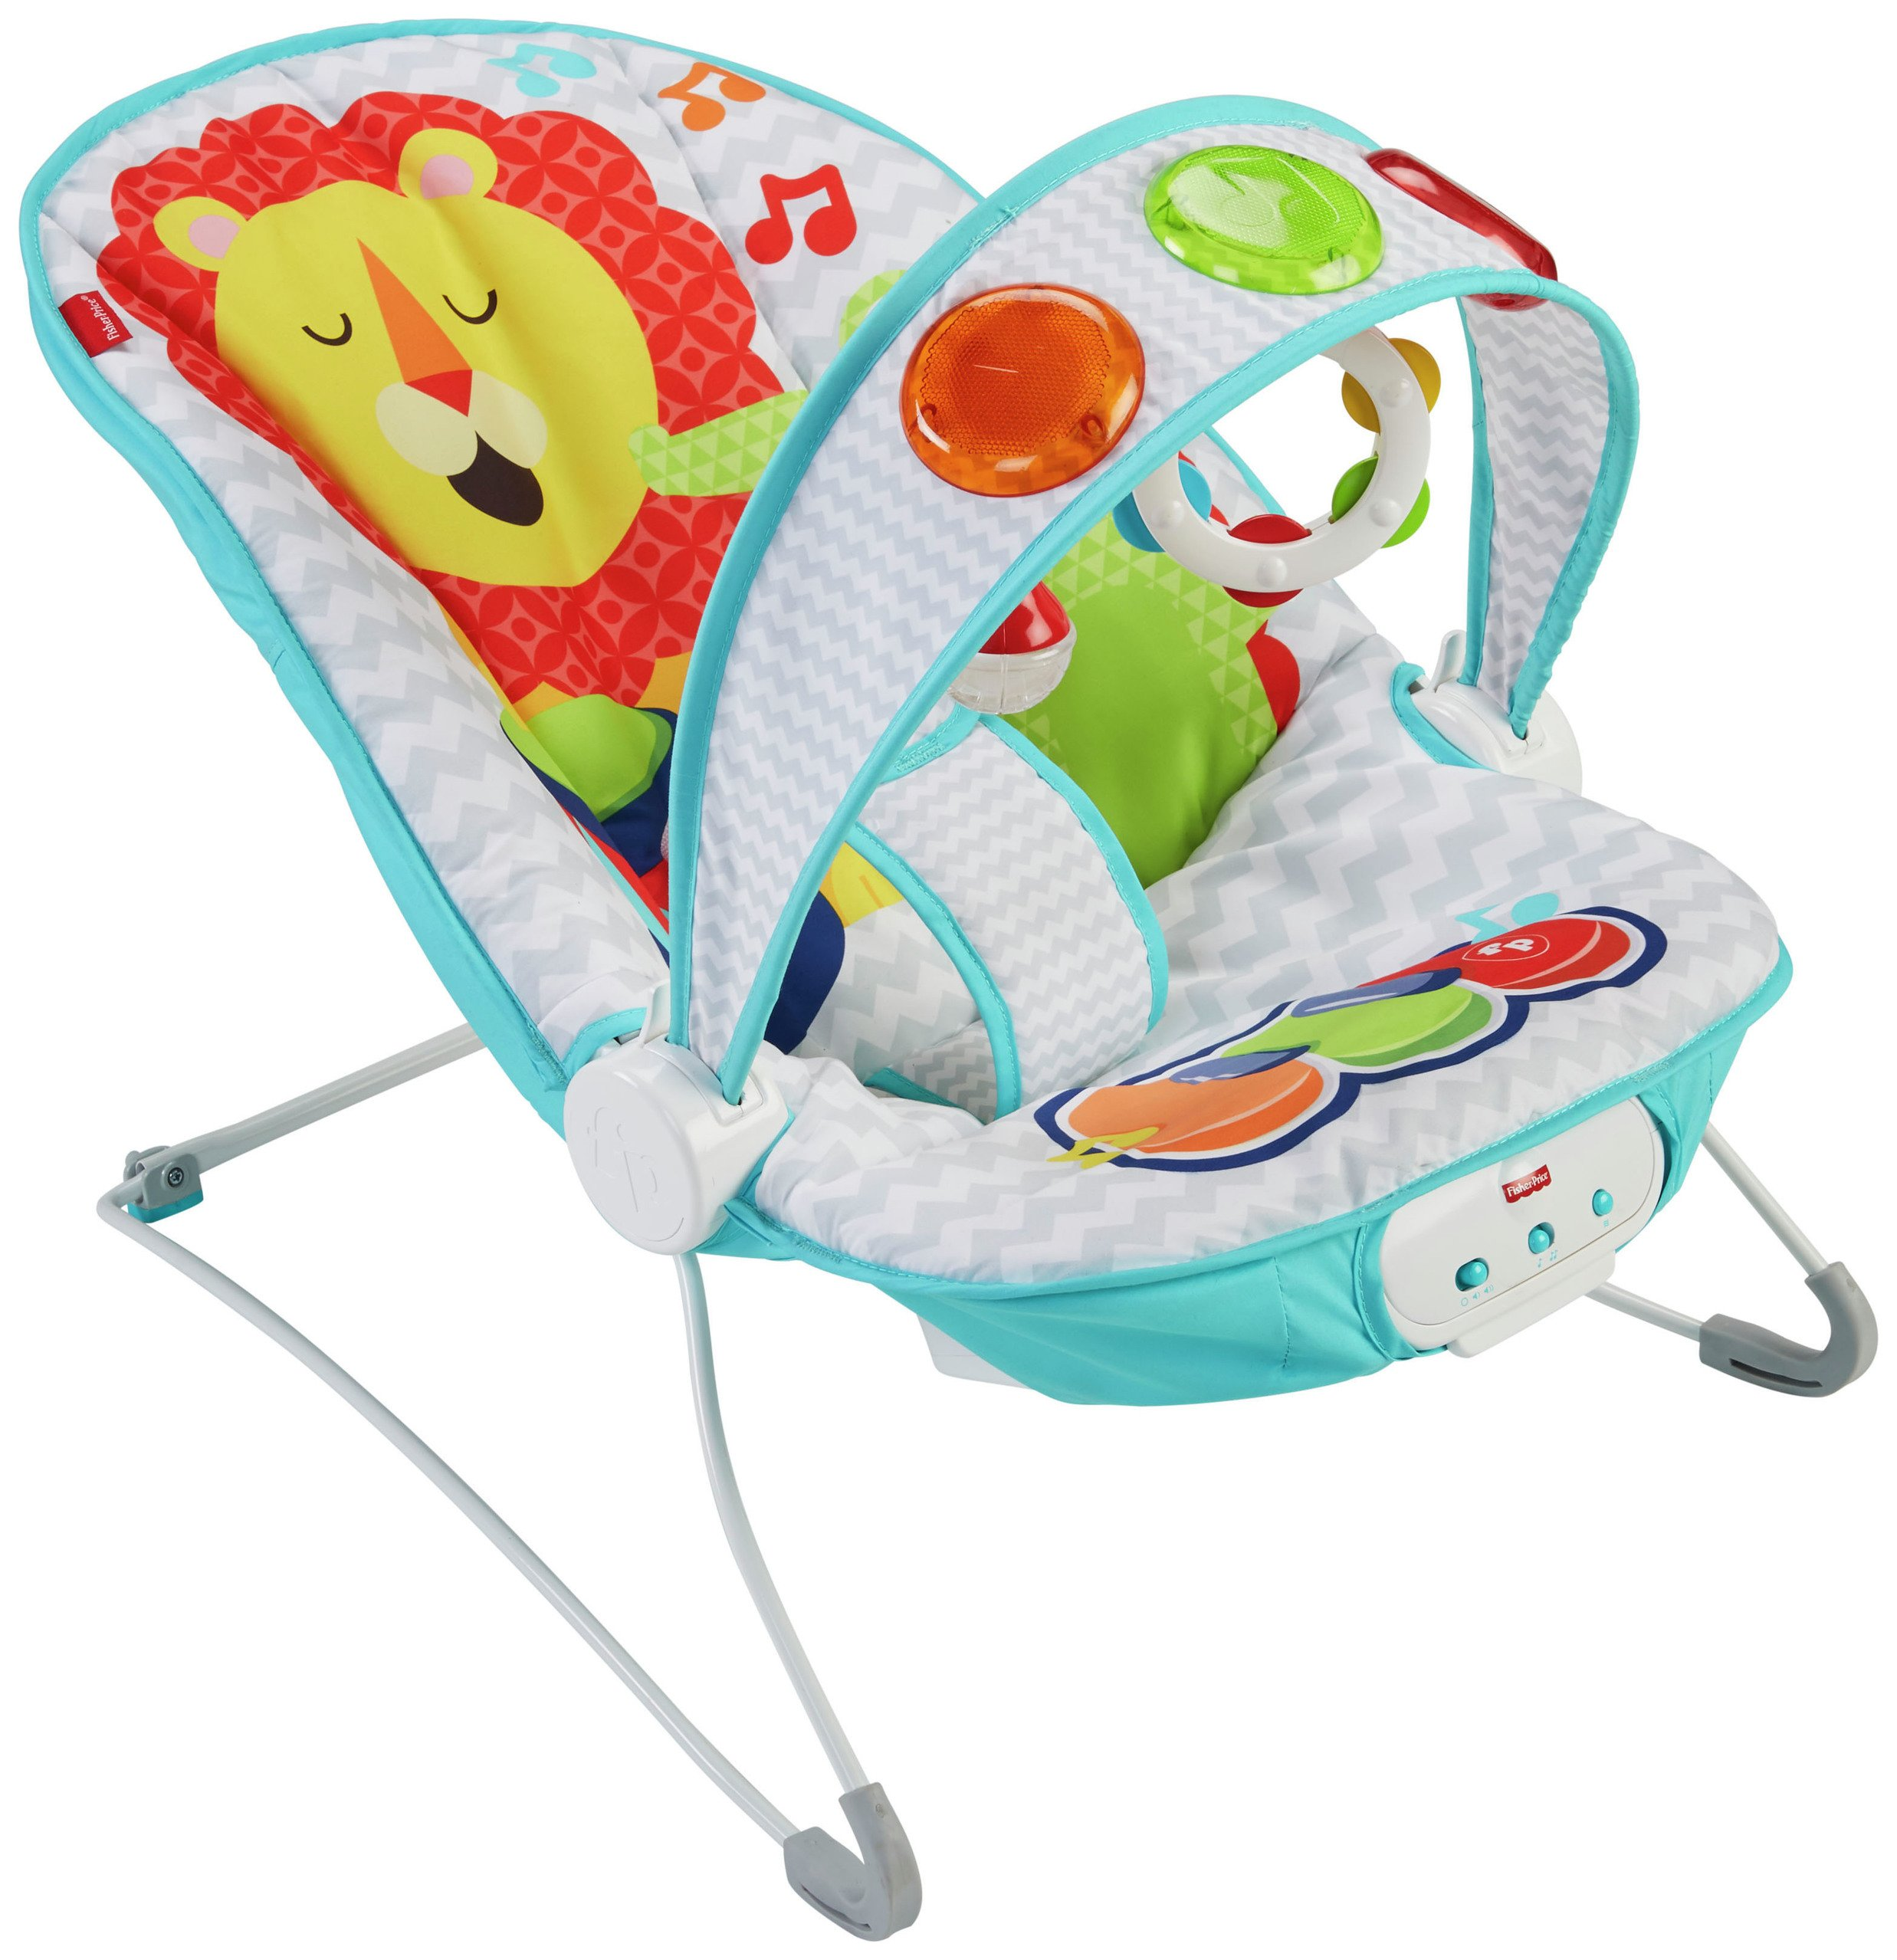 Fisher-Price Kick 'n' Play Musical Bouncer